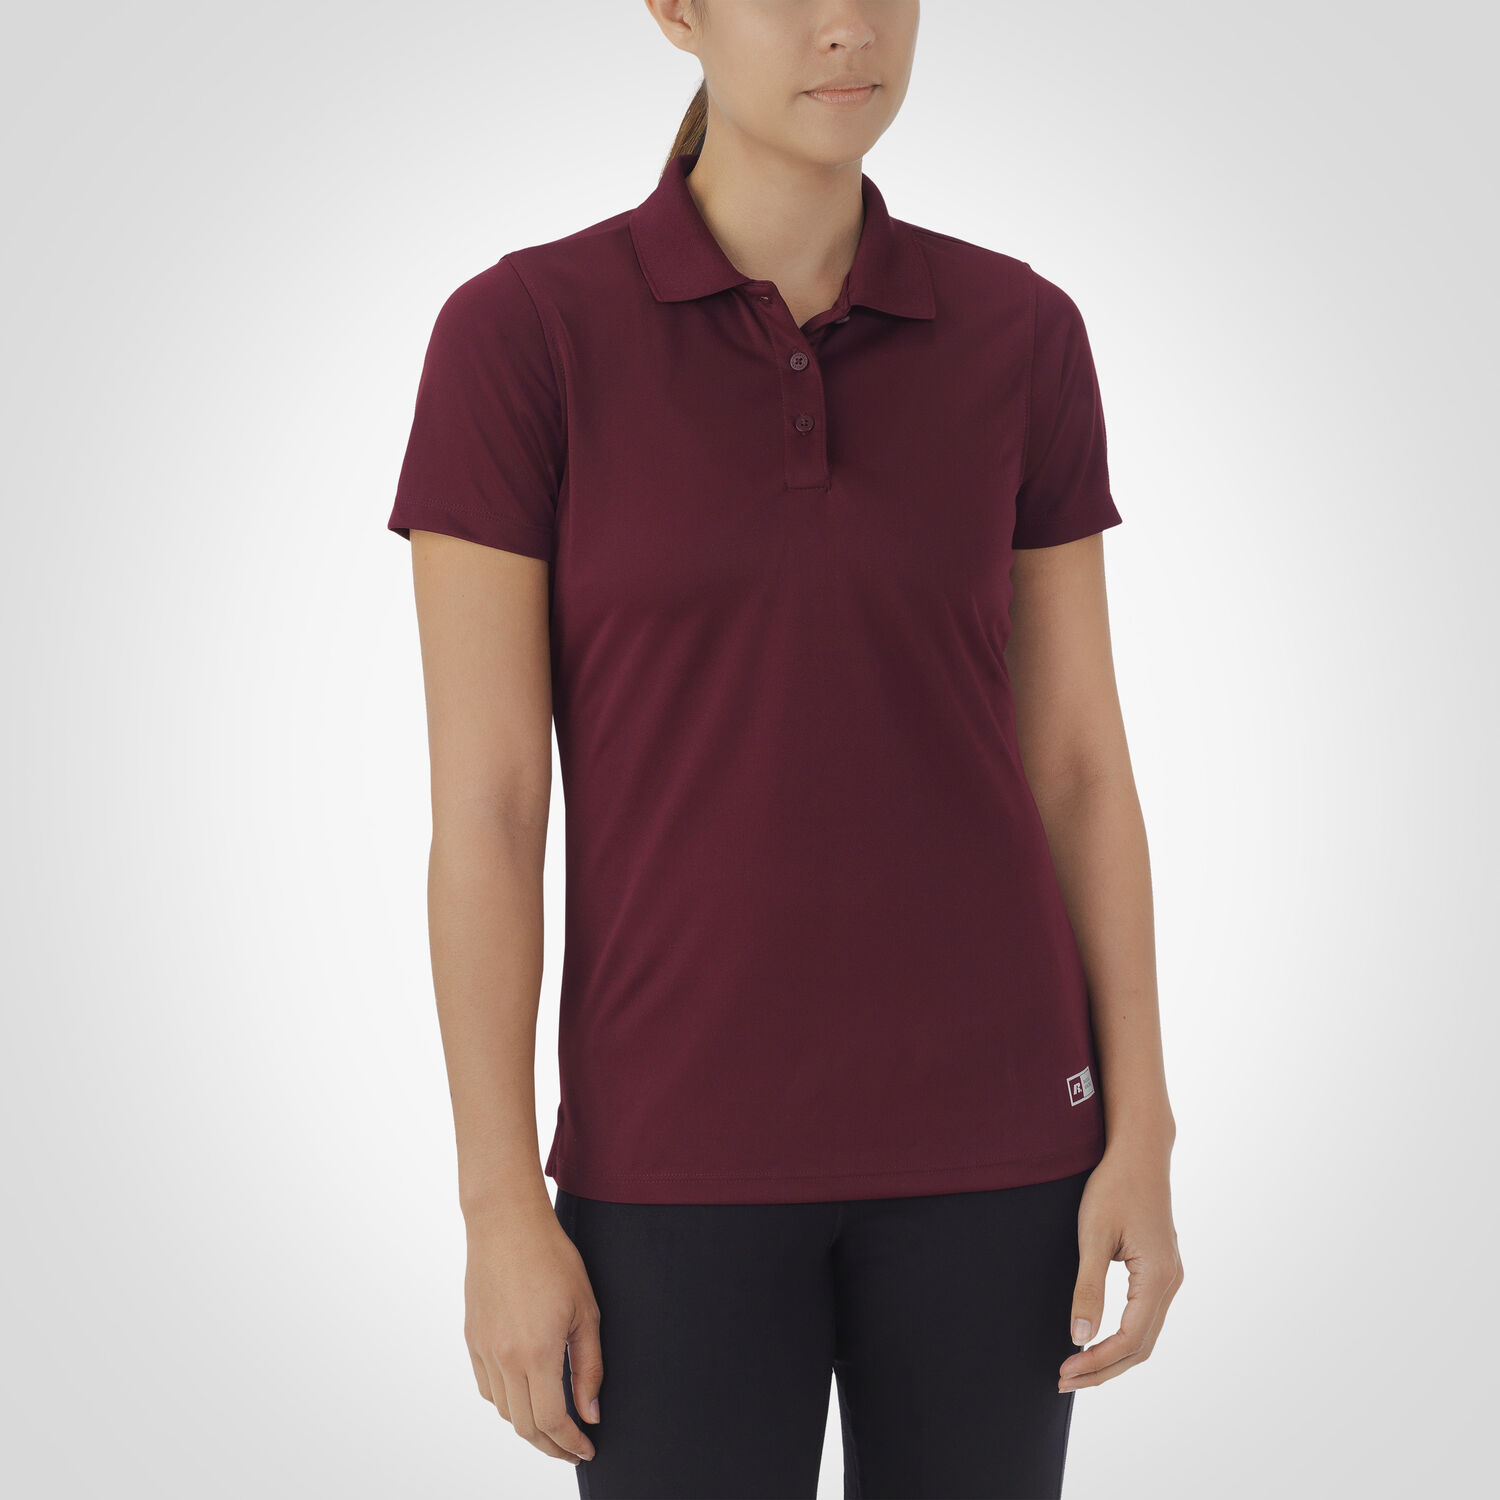 Women's Short Sleeve Shirts & Tops | Russell Athletic